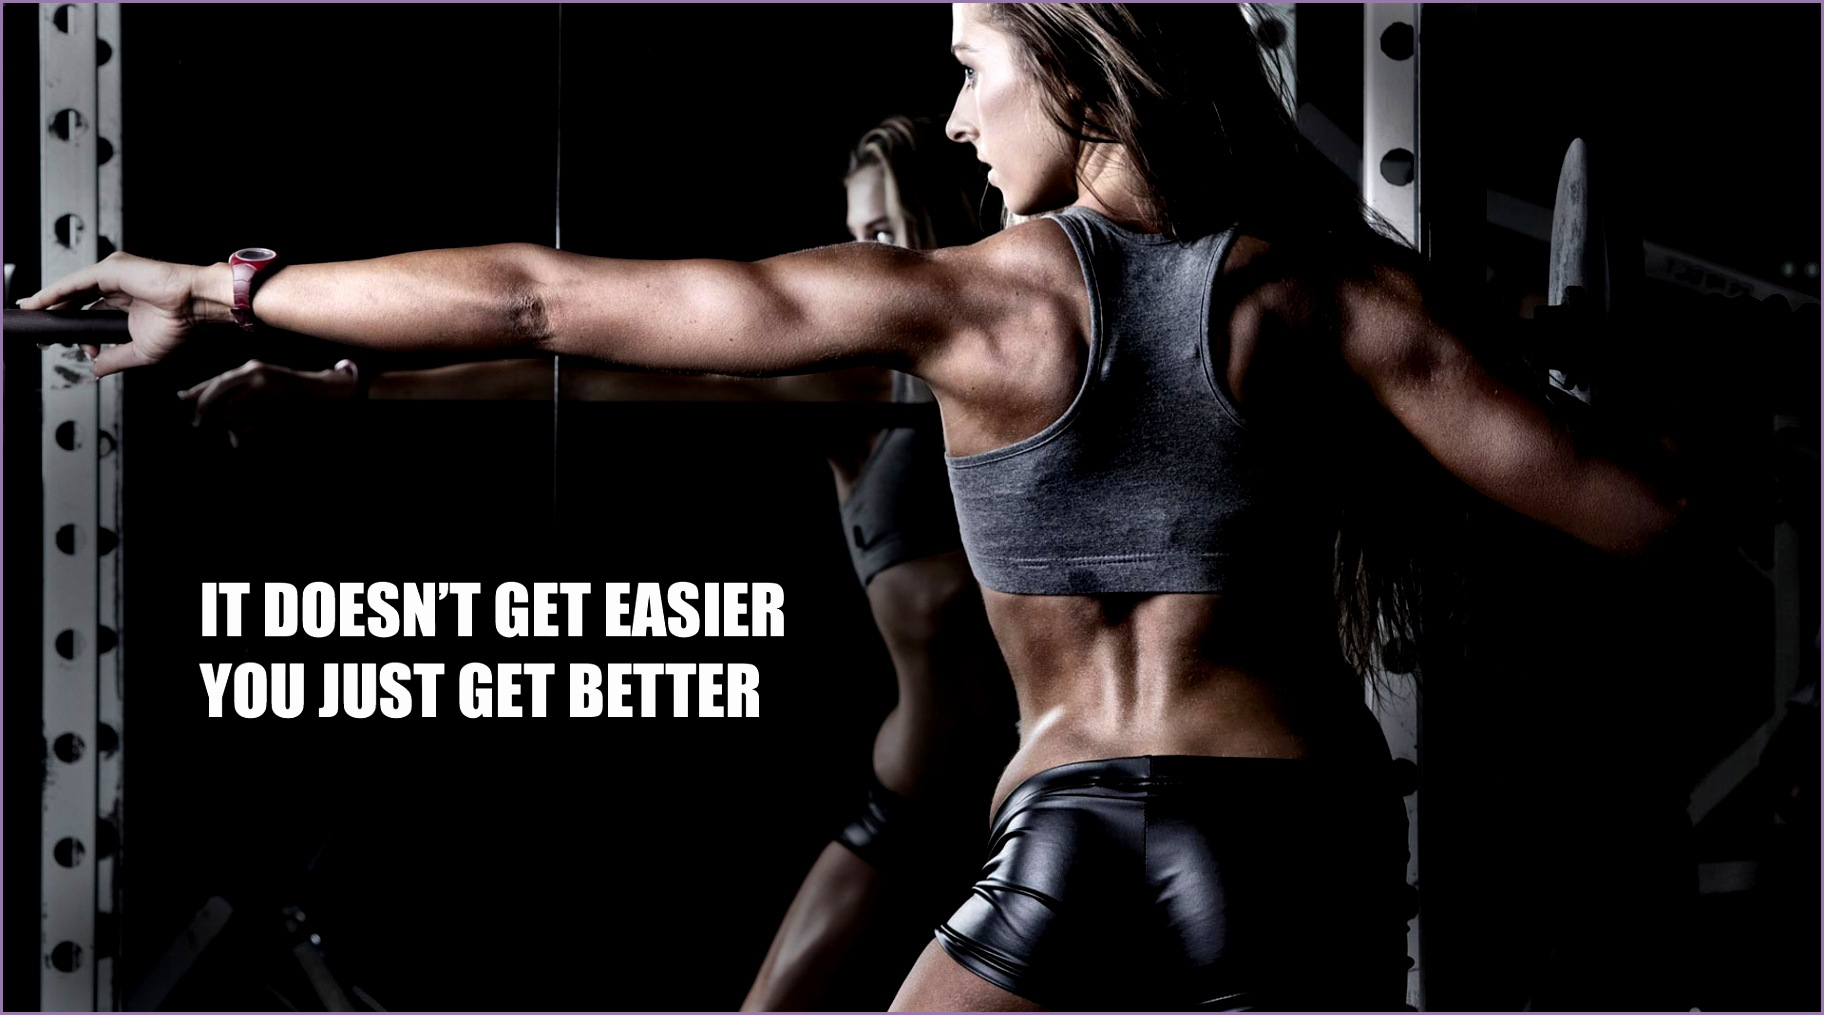 Pretty cool Amazing HD Motivational Wallpaper for your Desktop